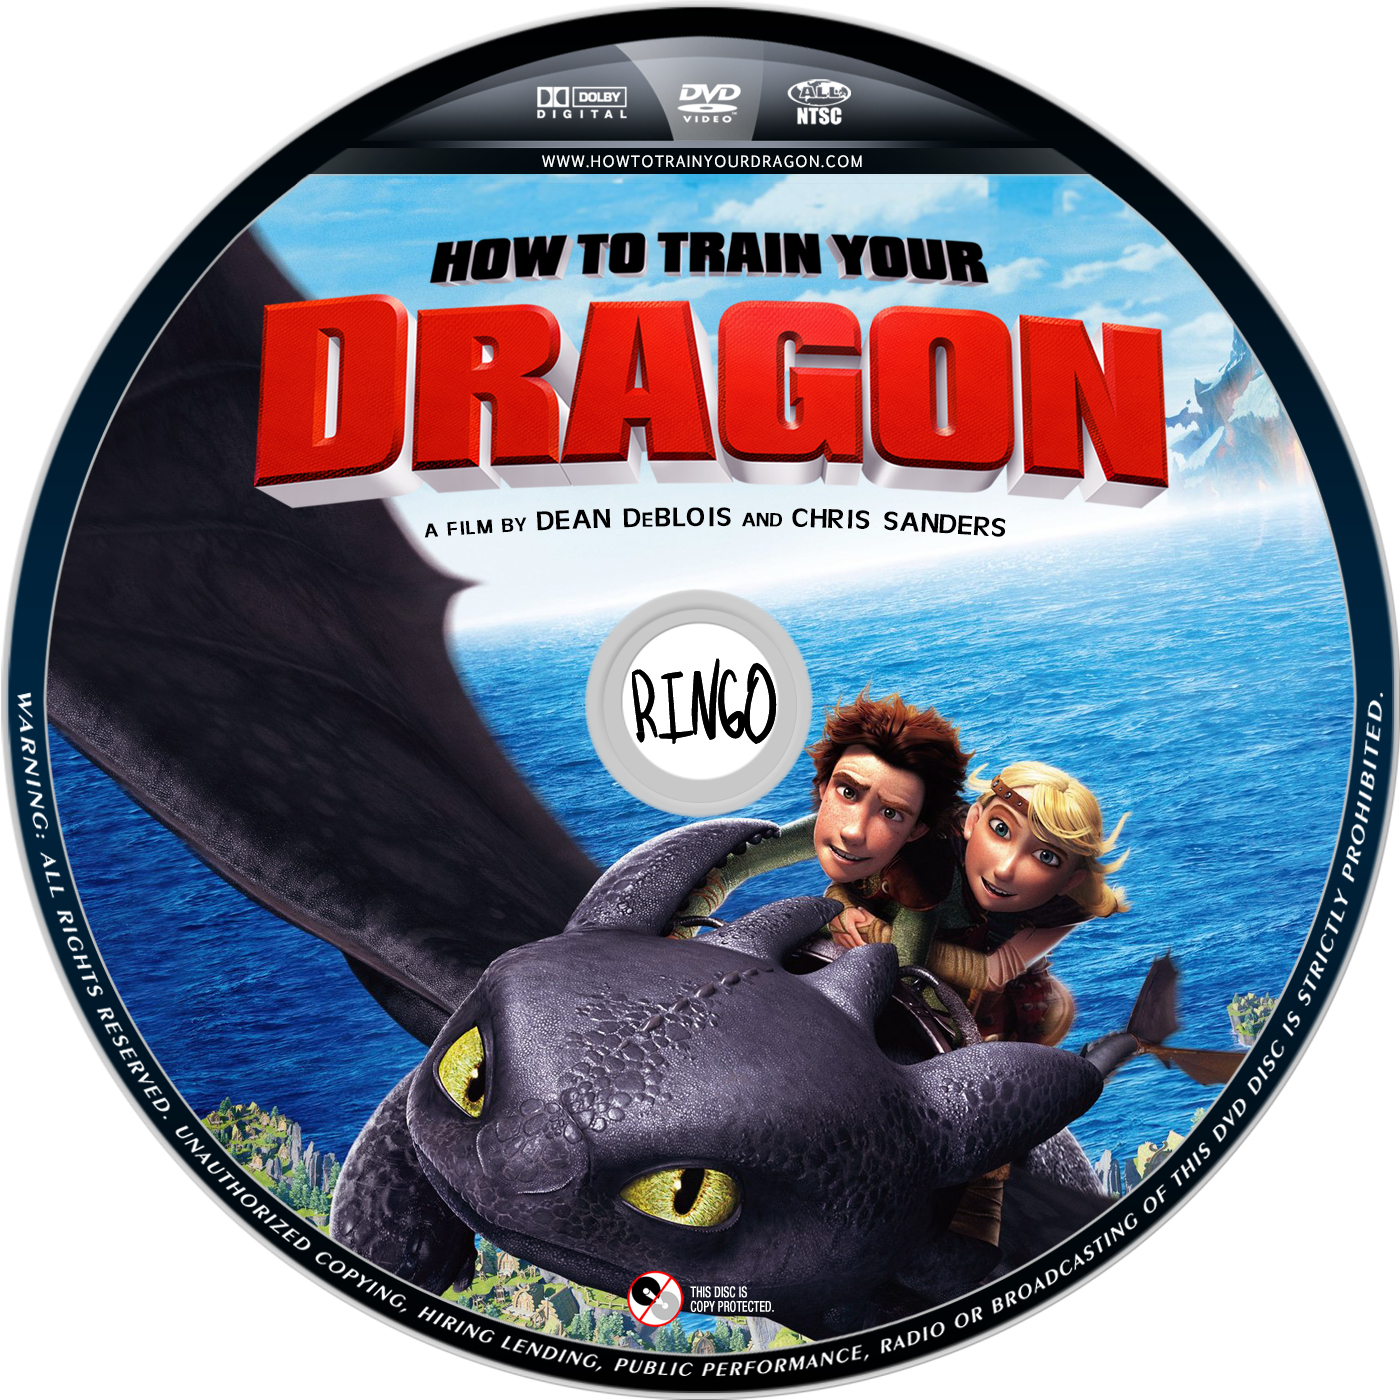 how to train your dragon 1 & 2 dvd set